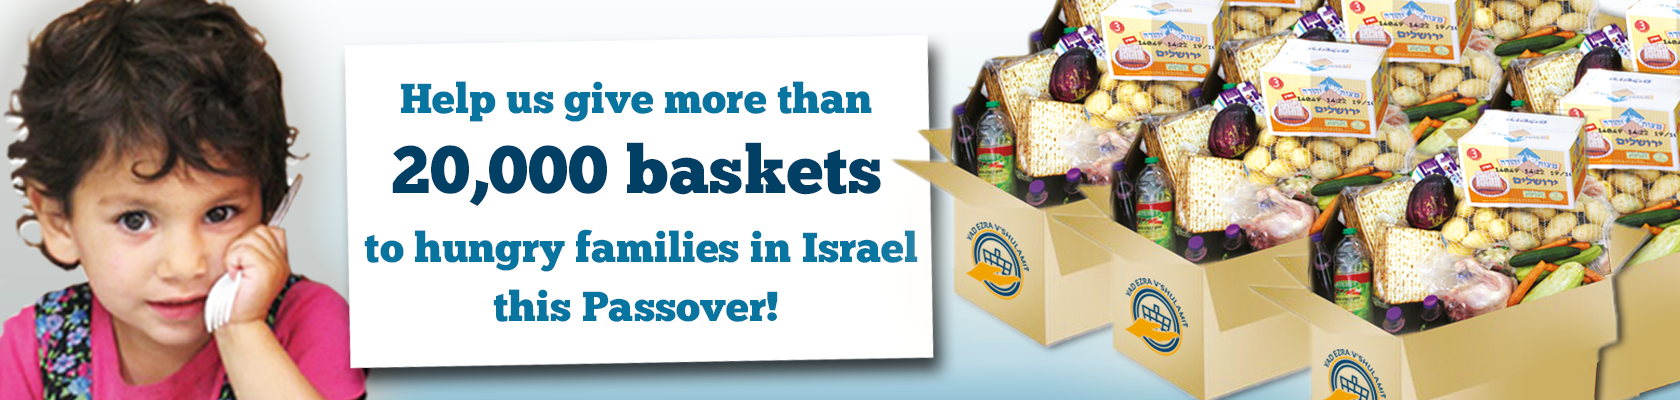 pesach-baskets